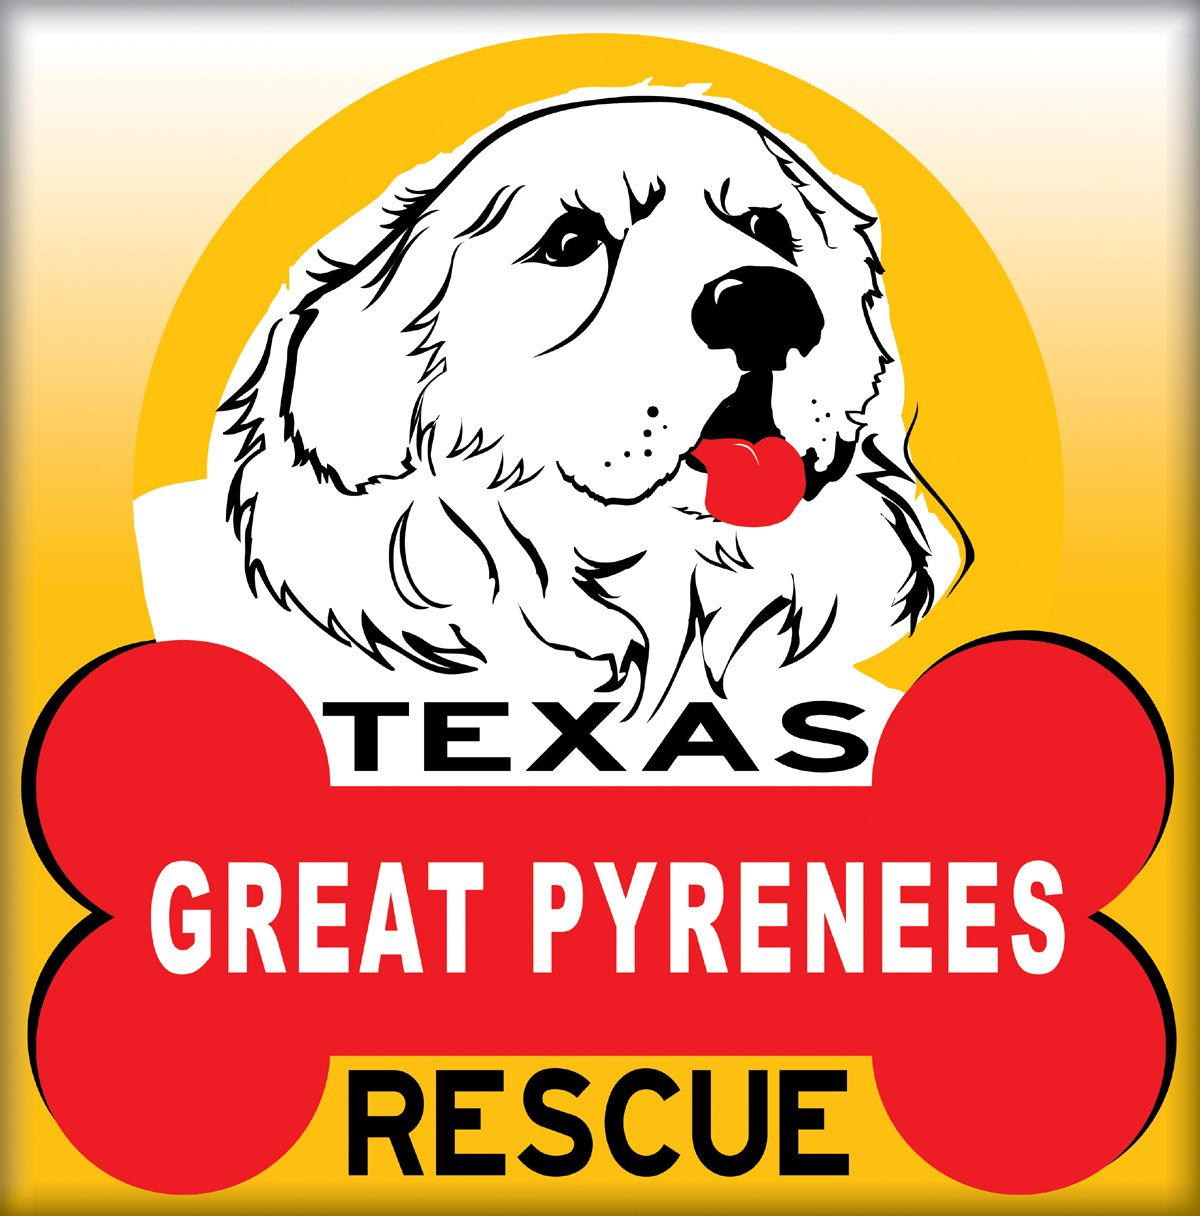 Texas Great Pyrenees Rescue Needs People Who Want To Foster And Or